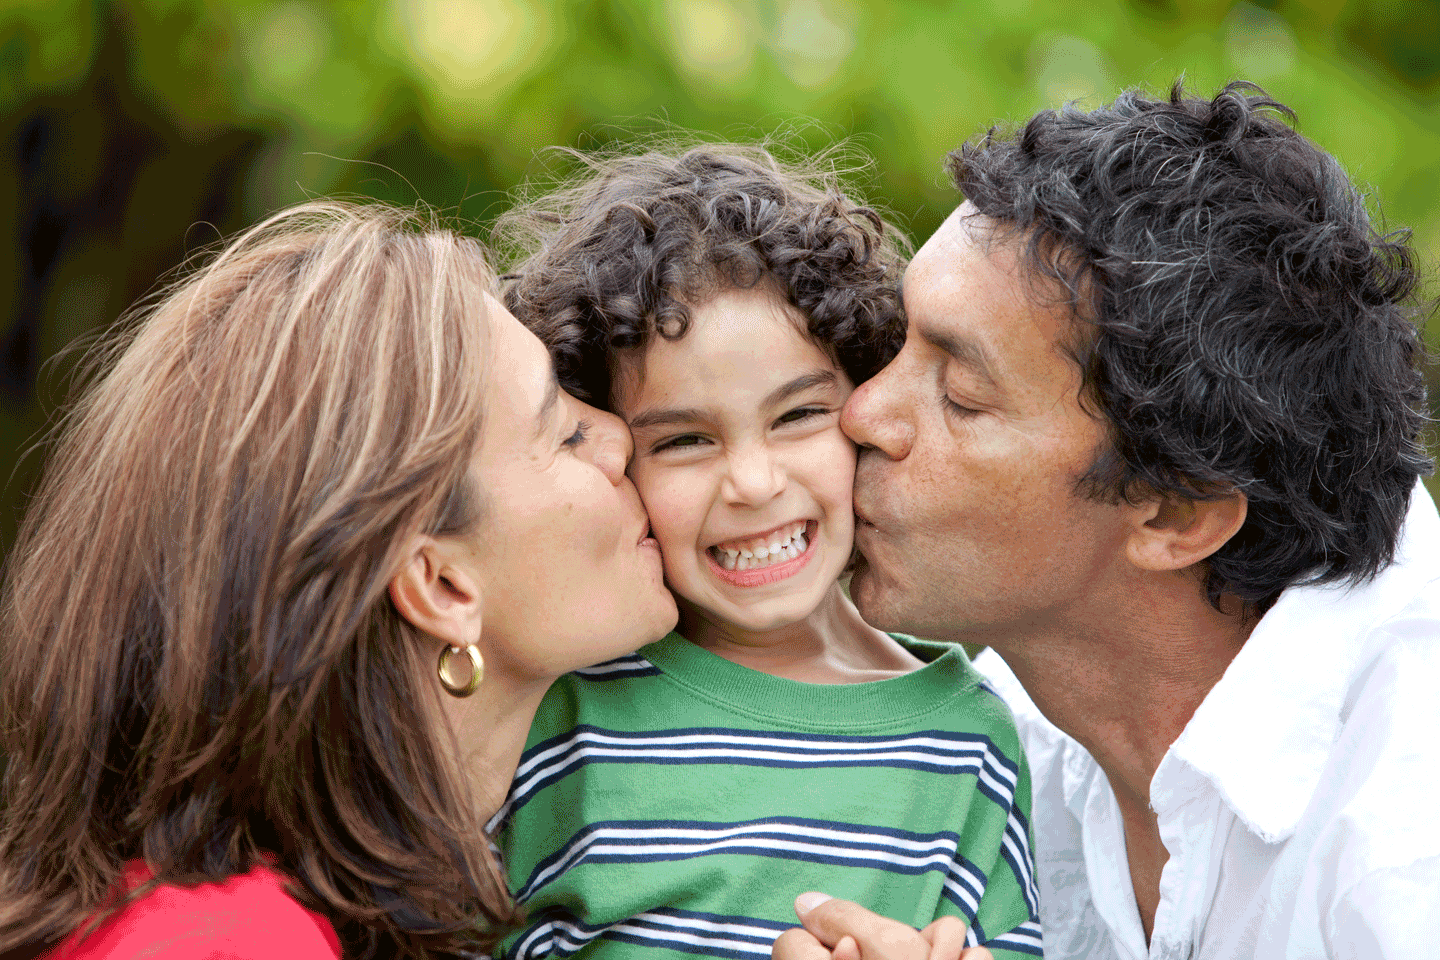 Image of a couple with child